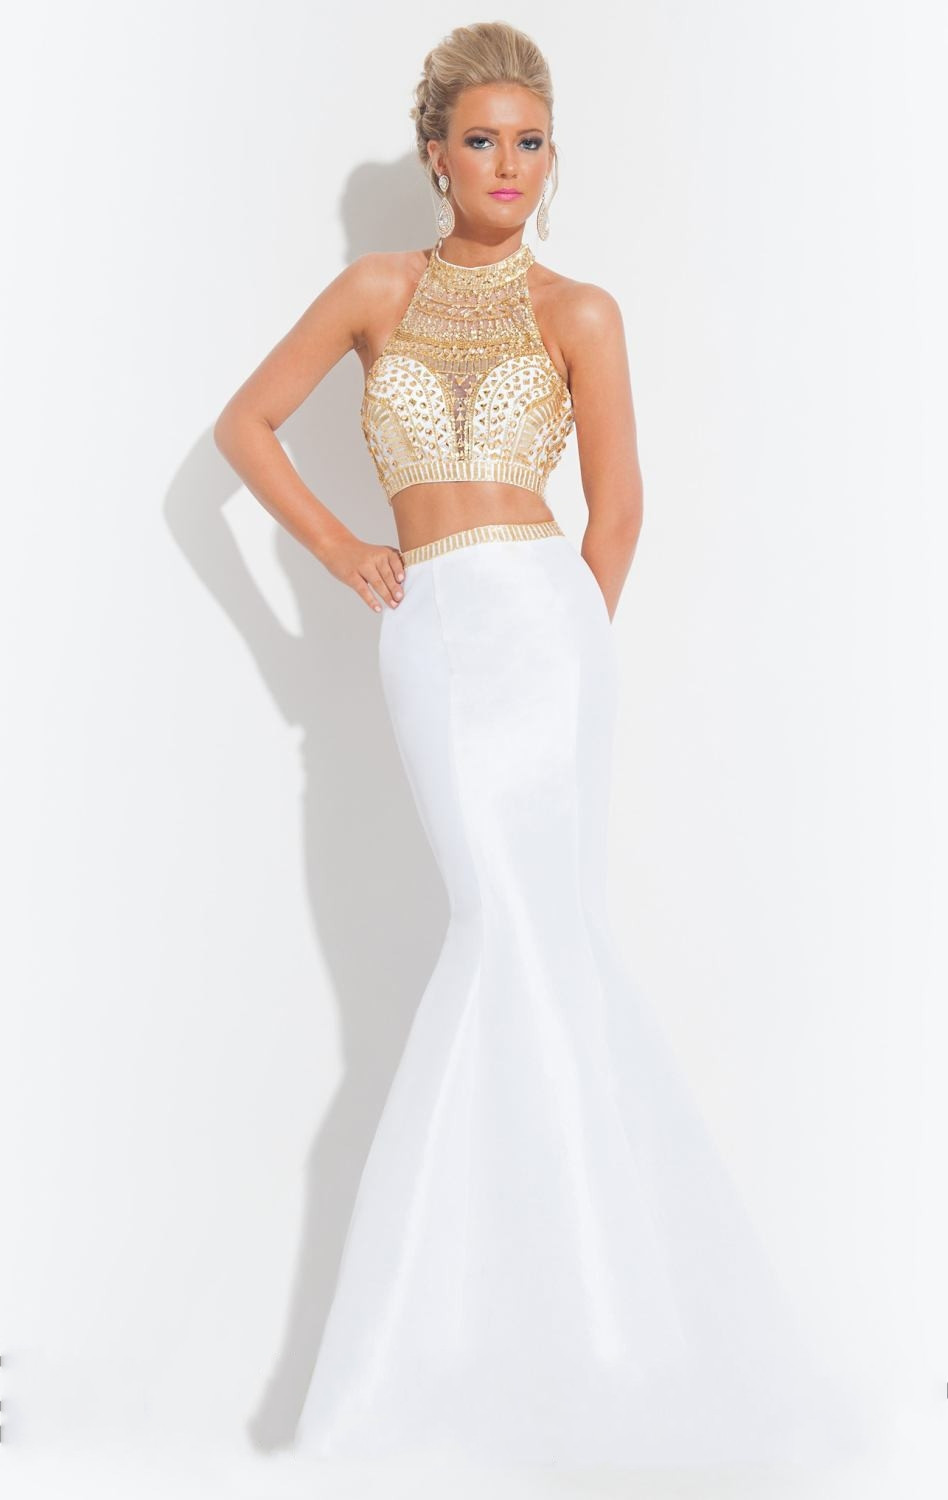 4df6004719de 2015 Hot White and Gold Crystal Sparkly Two Piece Prom Dresses Long Mermaid  Abendkleider 2 Piece Formal Party Evening Gowns